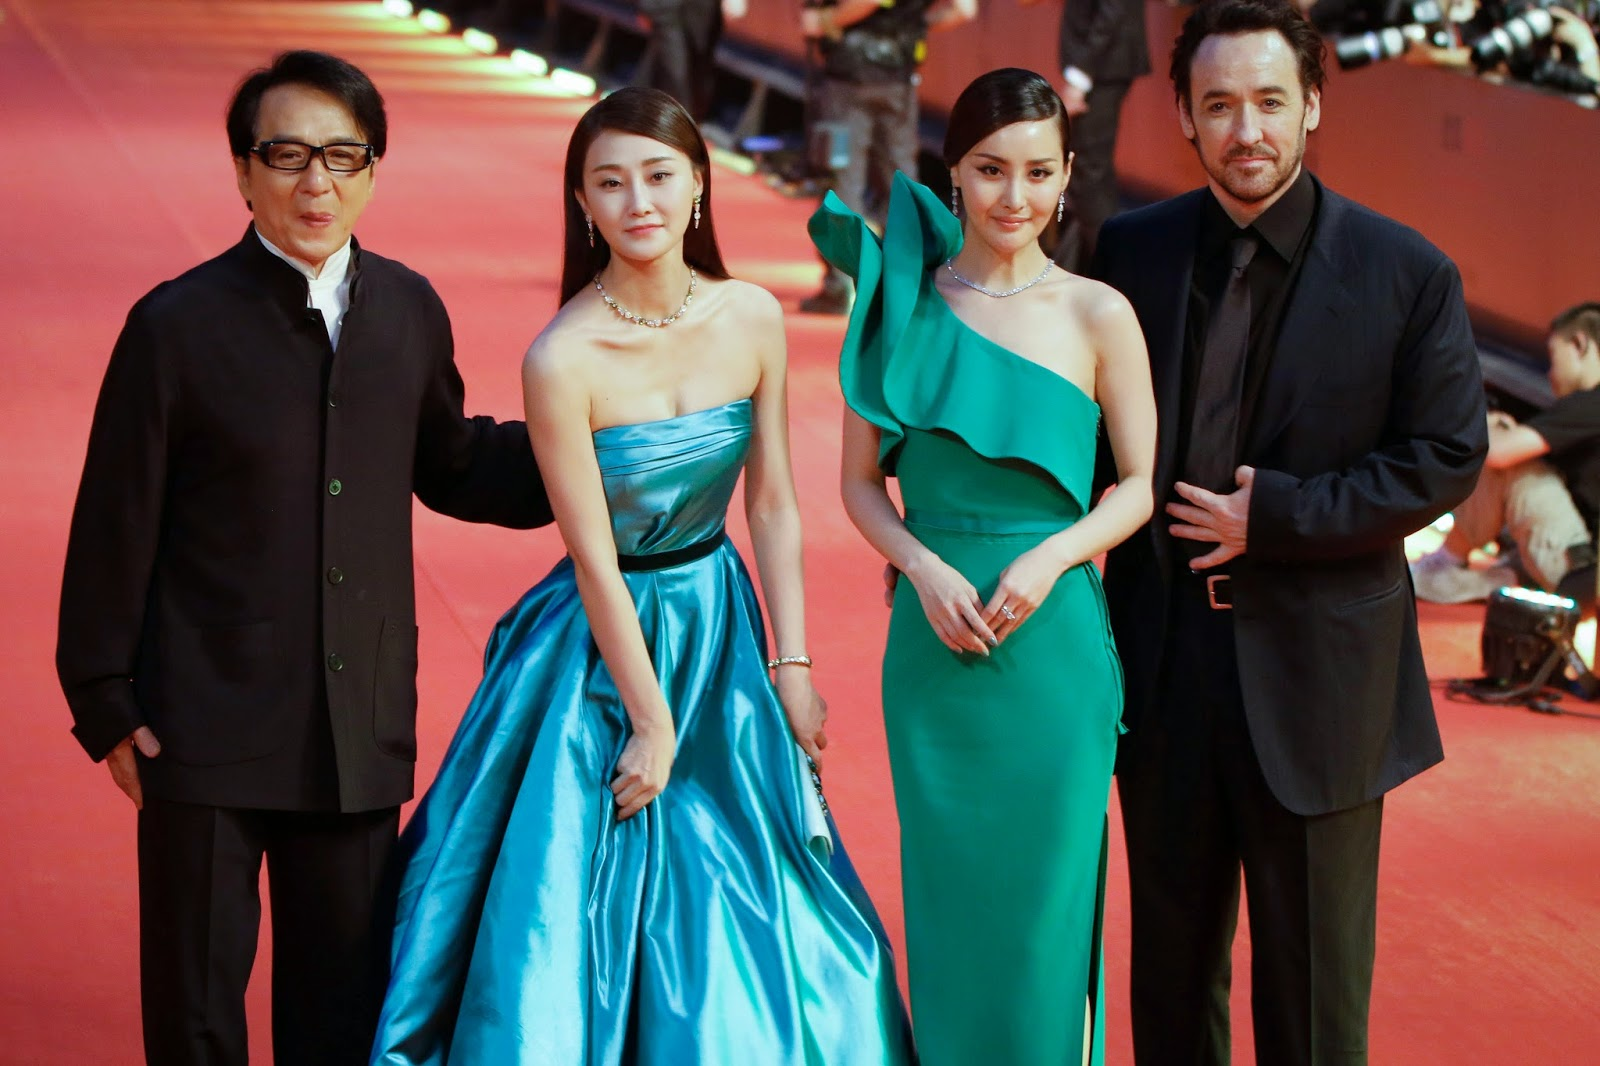 Asian Film Festival, China, Entertainment, Film Festival, Gong Li, Hong Kong, Jackie Chan, John Cusack, Maria Grazia Cucinotta, Nicole Kidman, Shanghai, Shanghai International Film Festival, Showbiz,